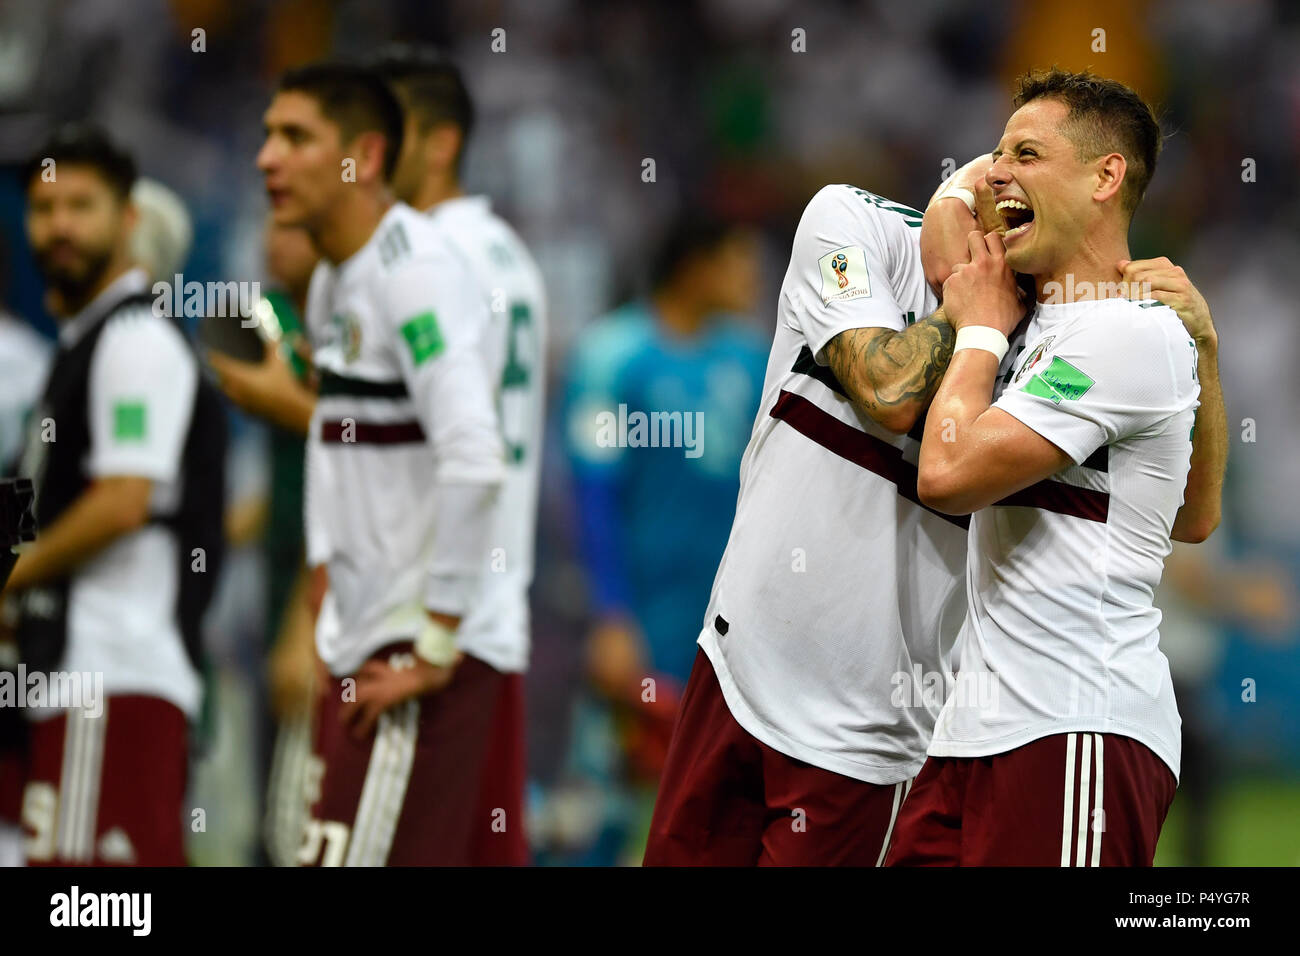 7ed9d46d8 Chicharito Mexico Stock Photos   Chicharito Mexico Stock Images - Alamy